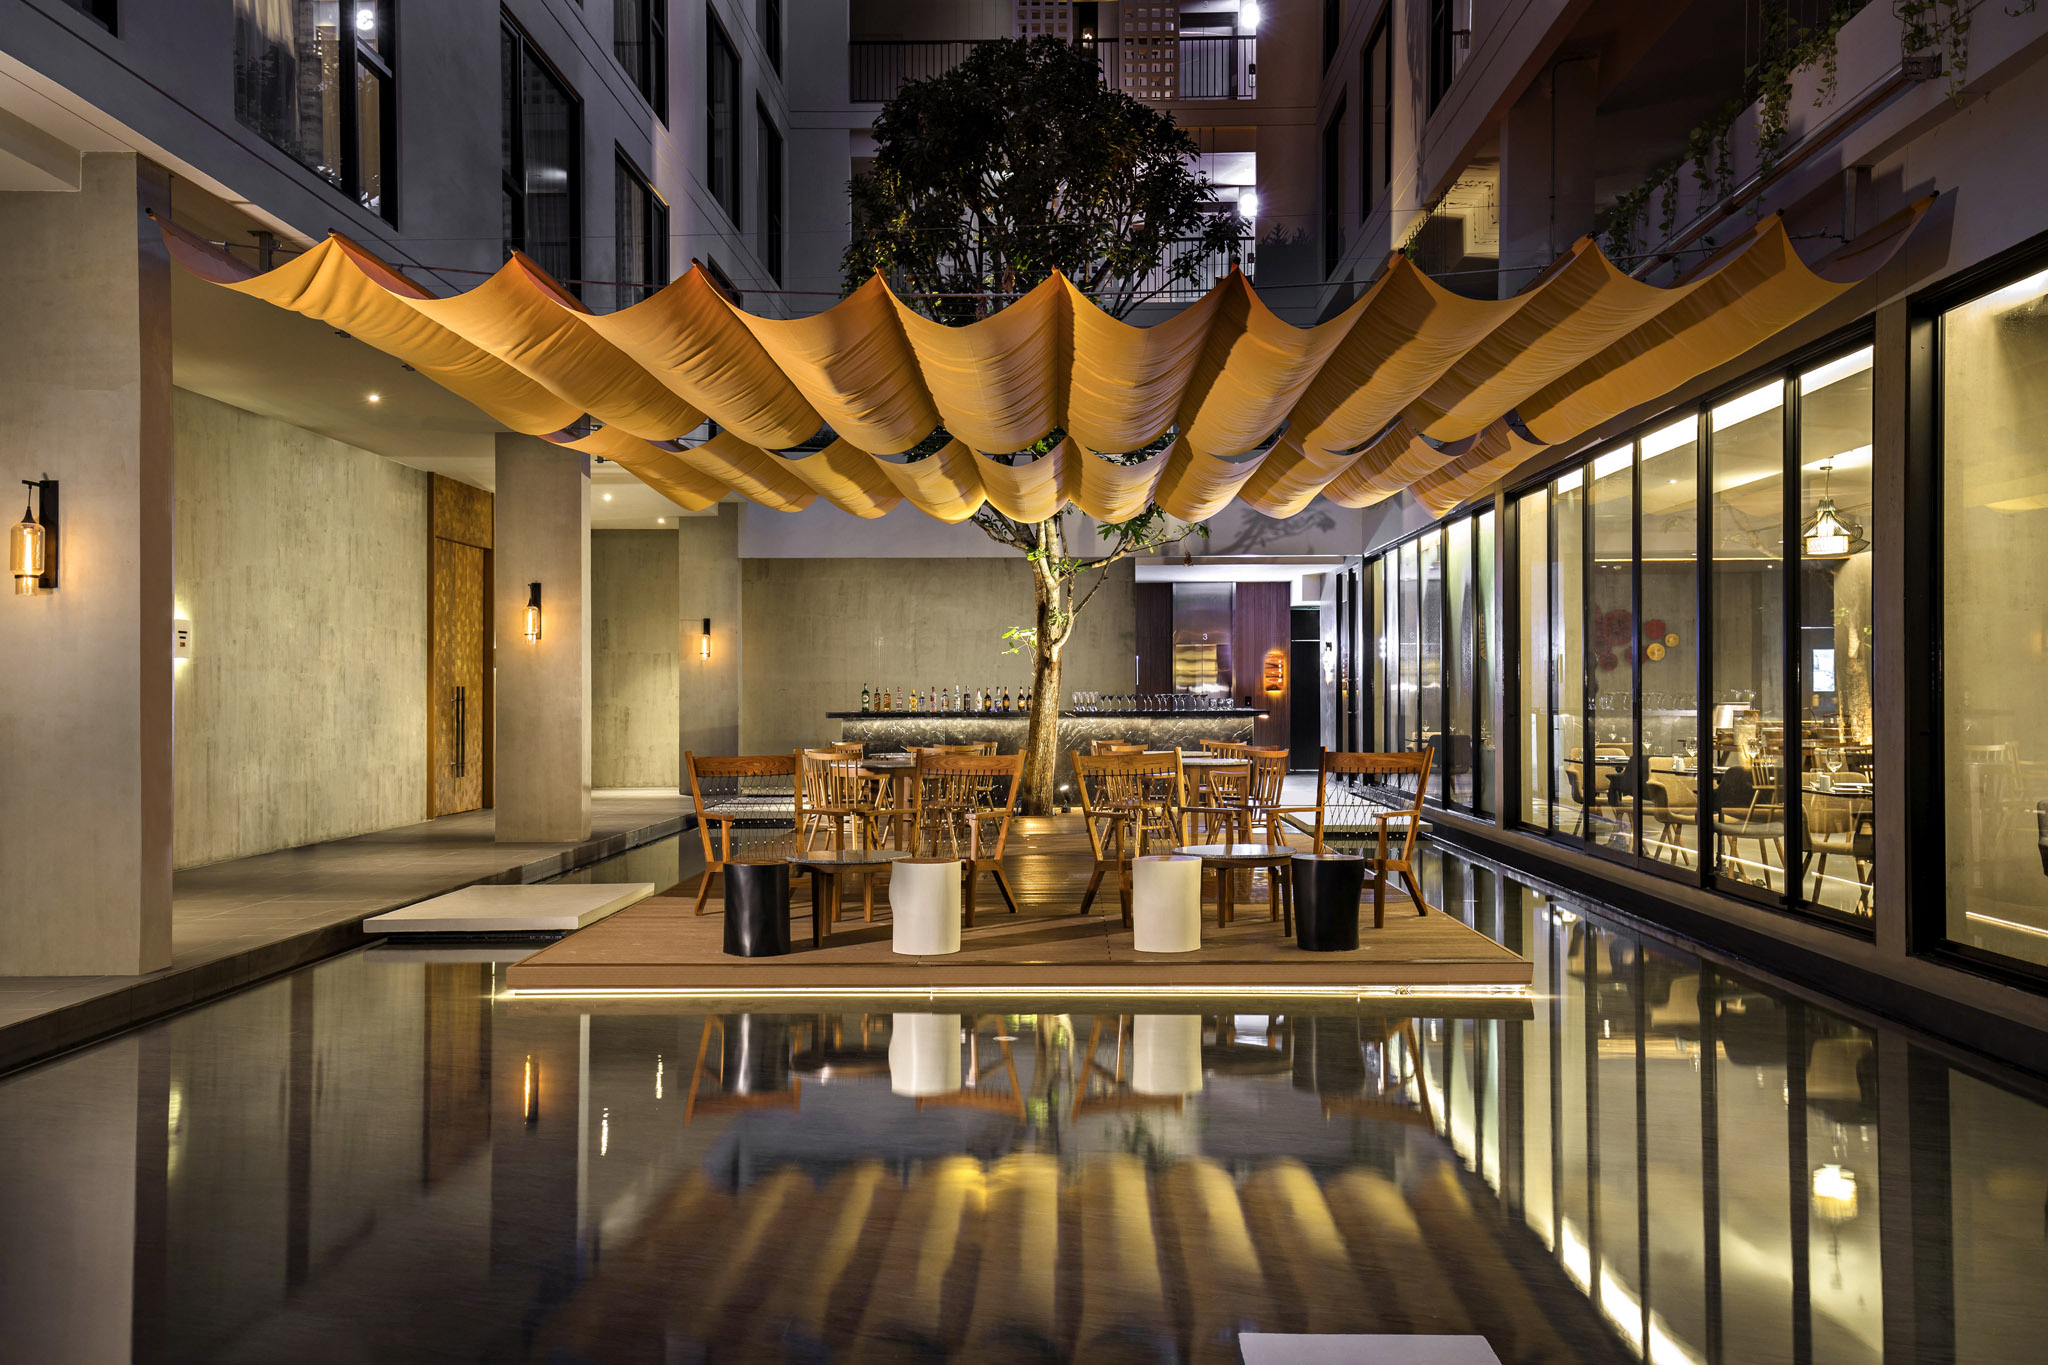 [Opening Promo Inside] The comforting and energizing hospitality of Novotel debuts in Chiang Mai with Chiang Mai Nimman Jouryneyhub - Alvinology